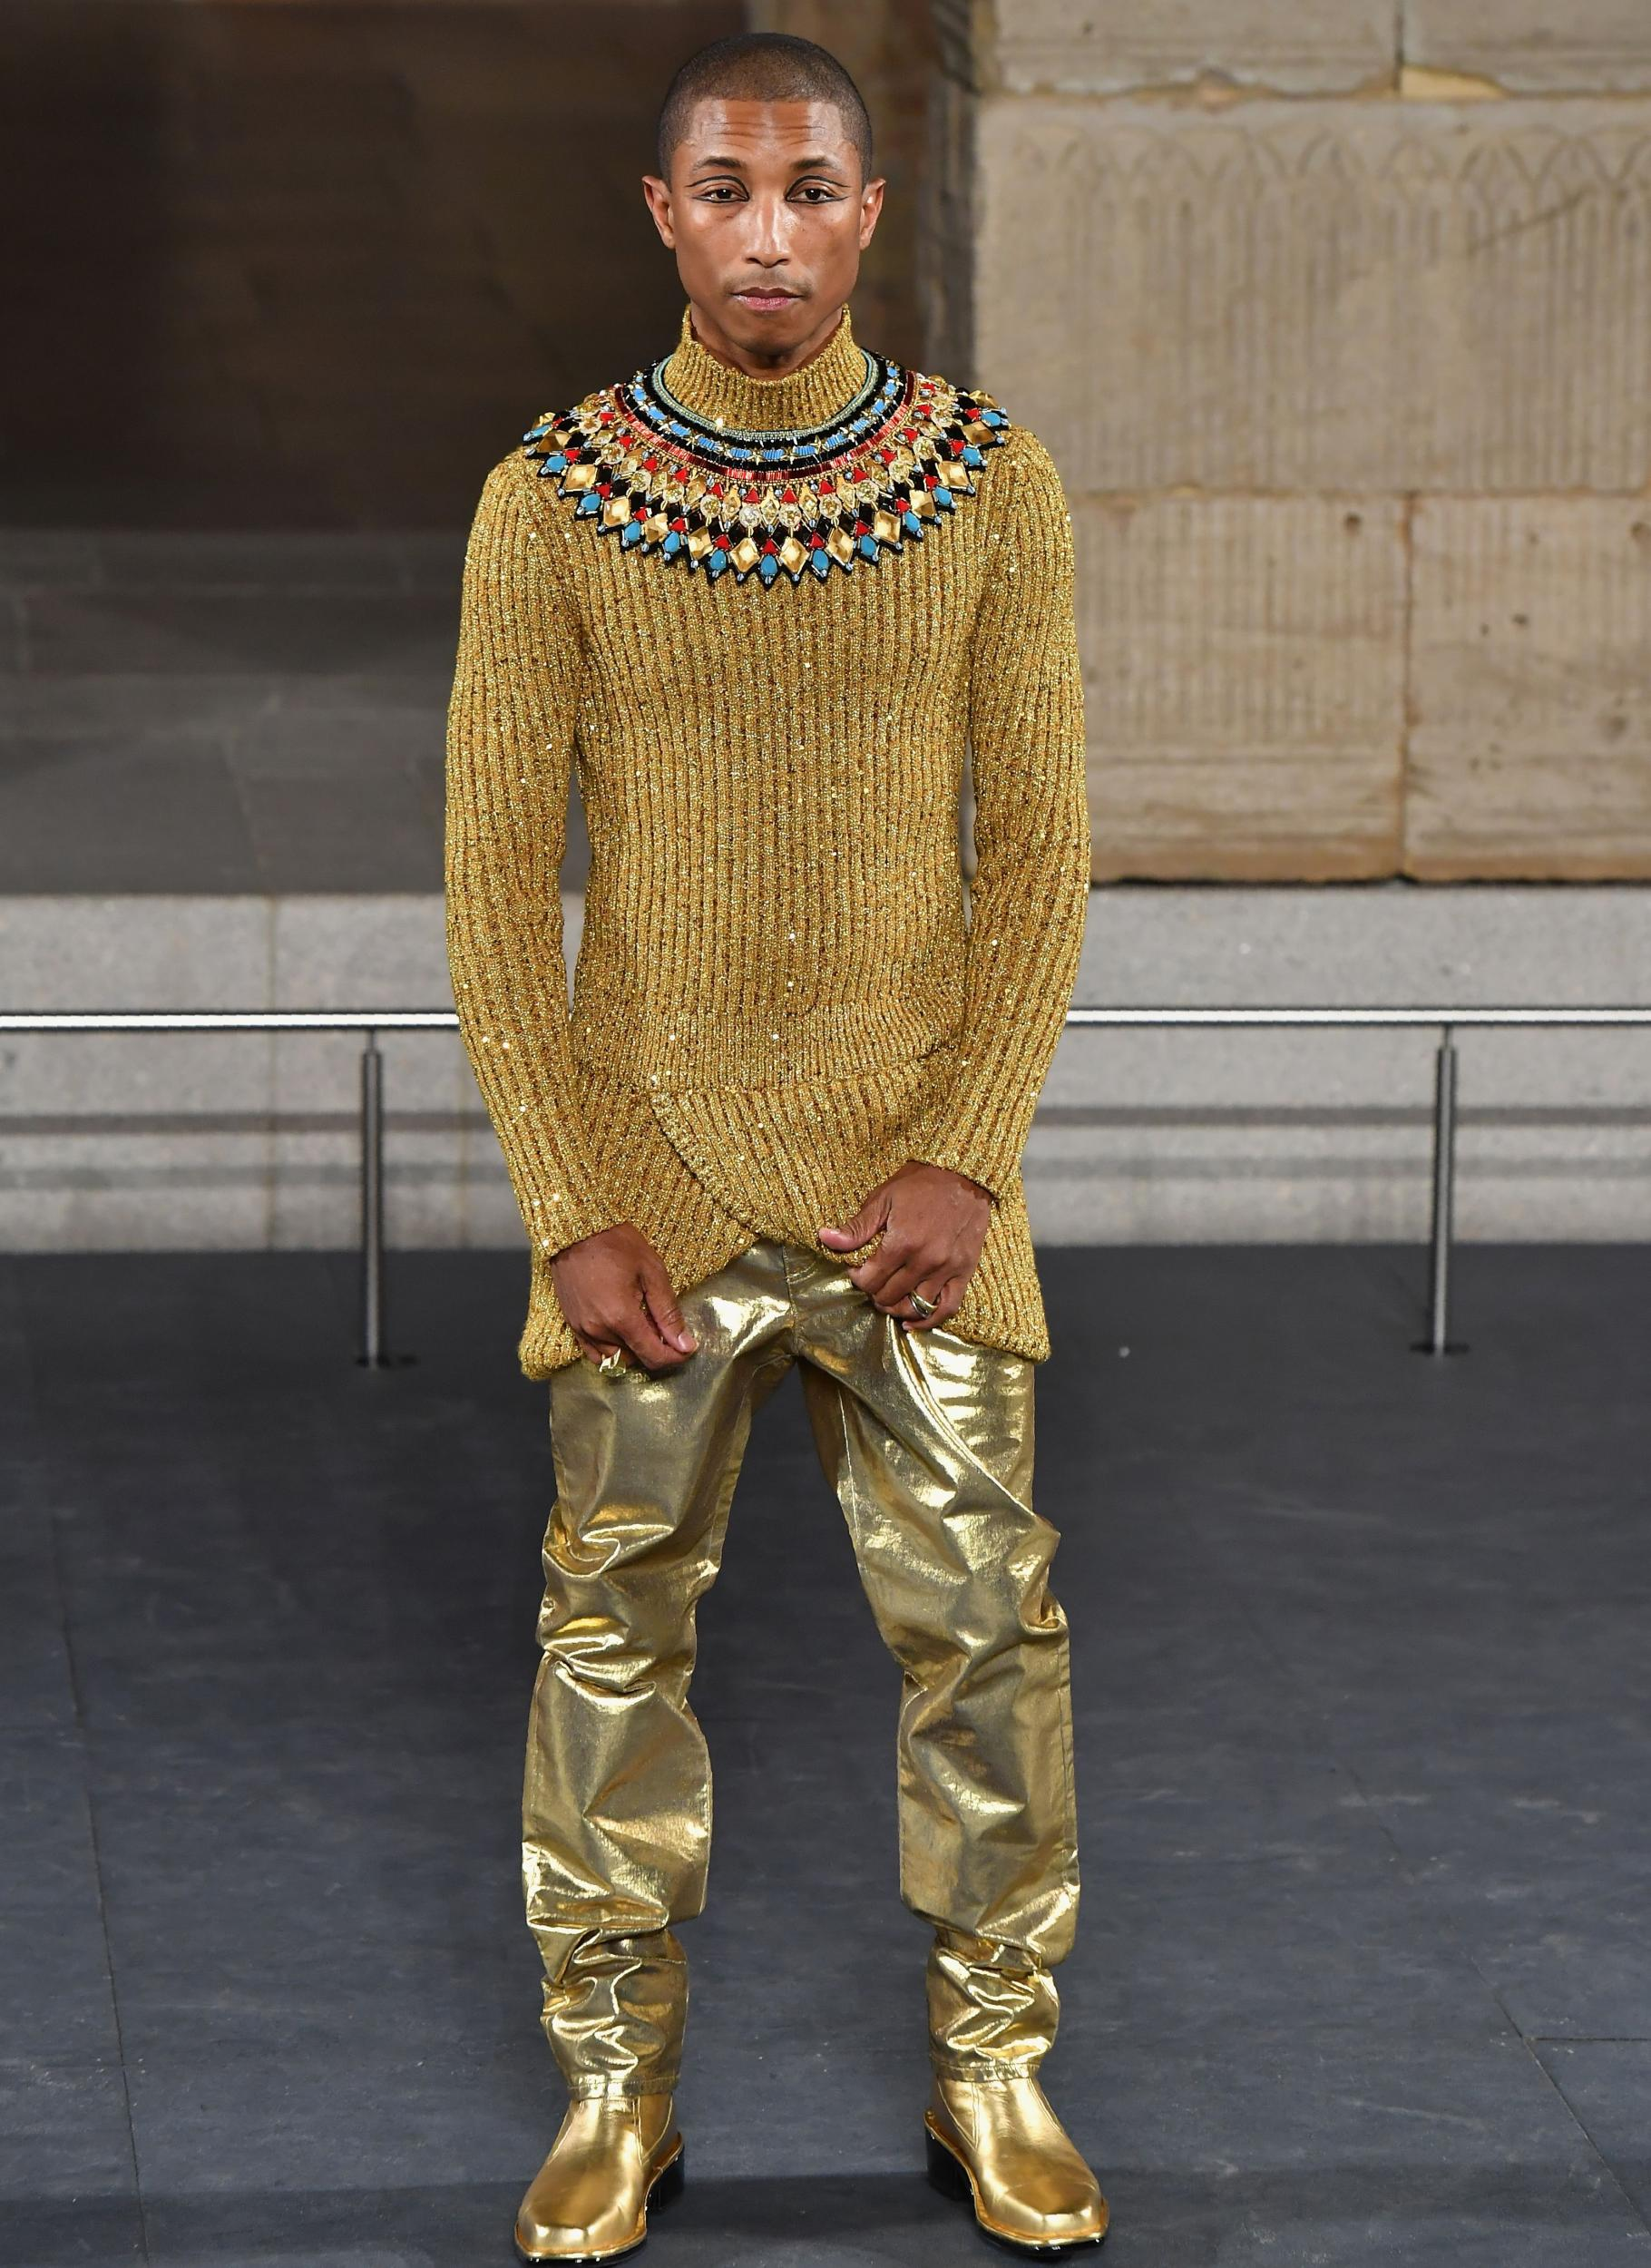 e089dd5b59d Alton Mason makes history as first black male model to walk in Chanel show  in 109 years